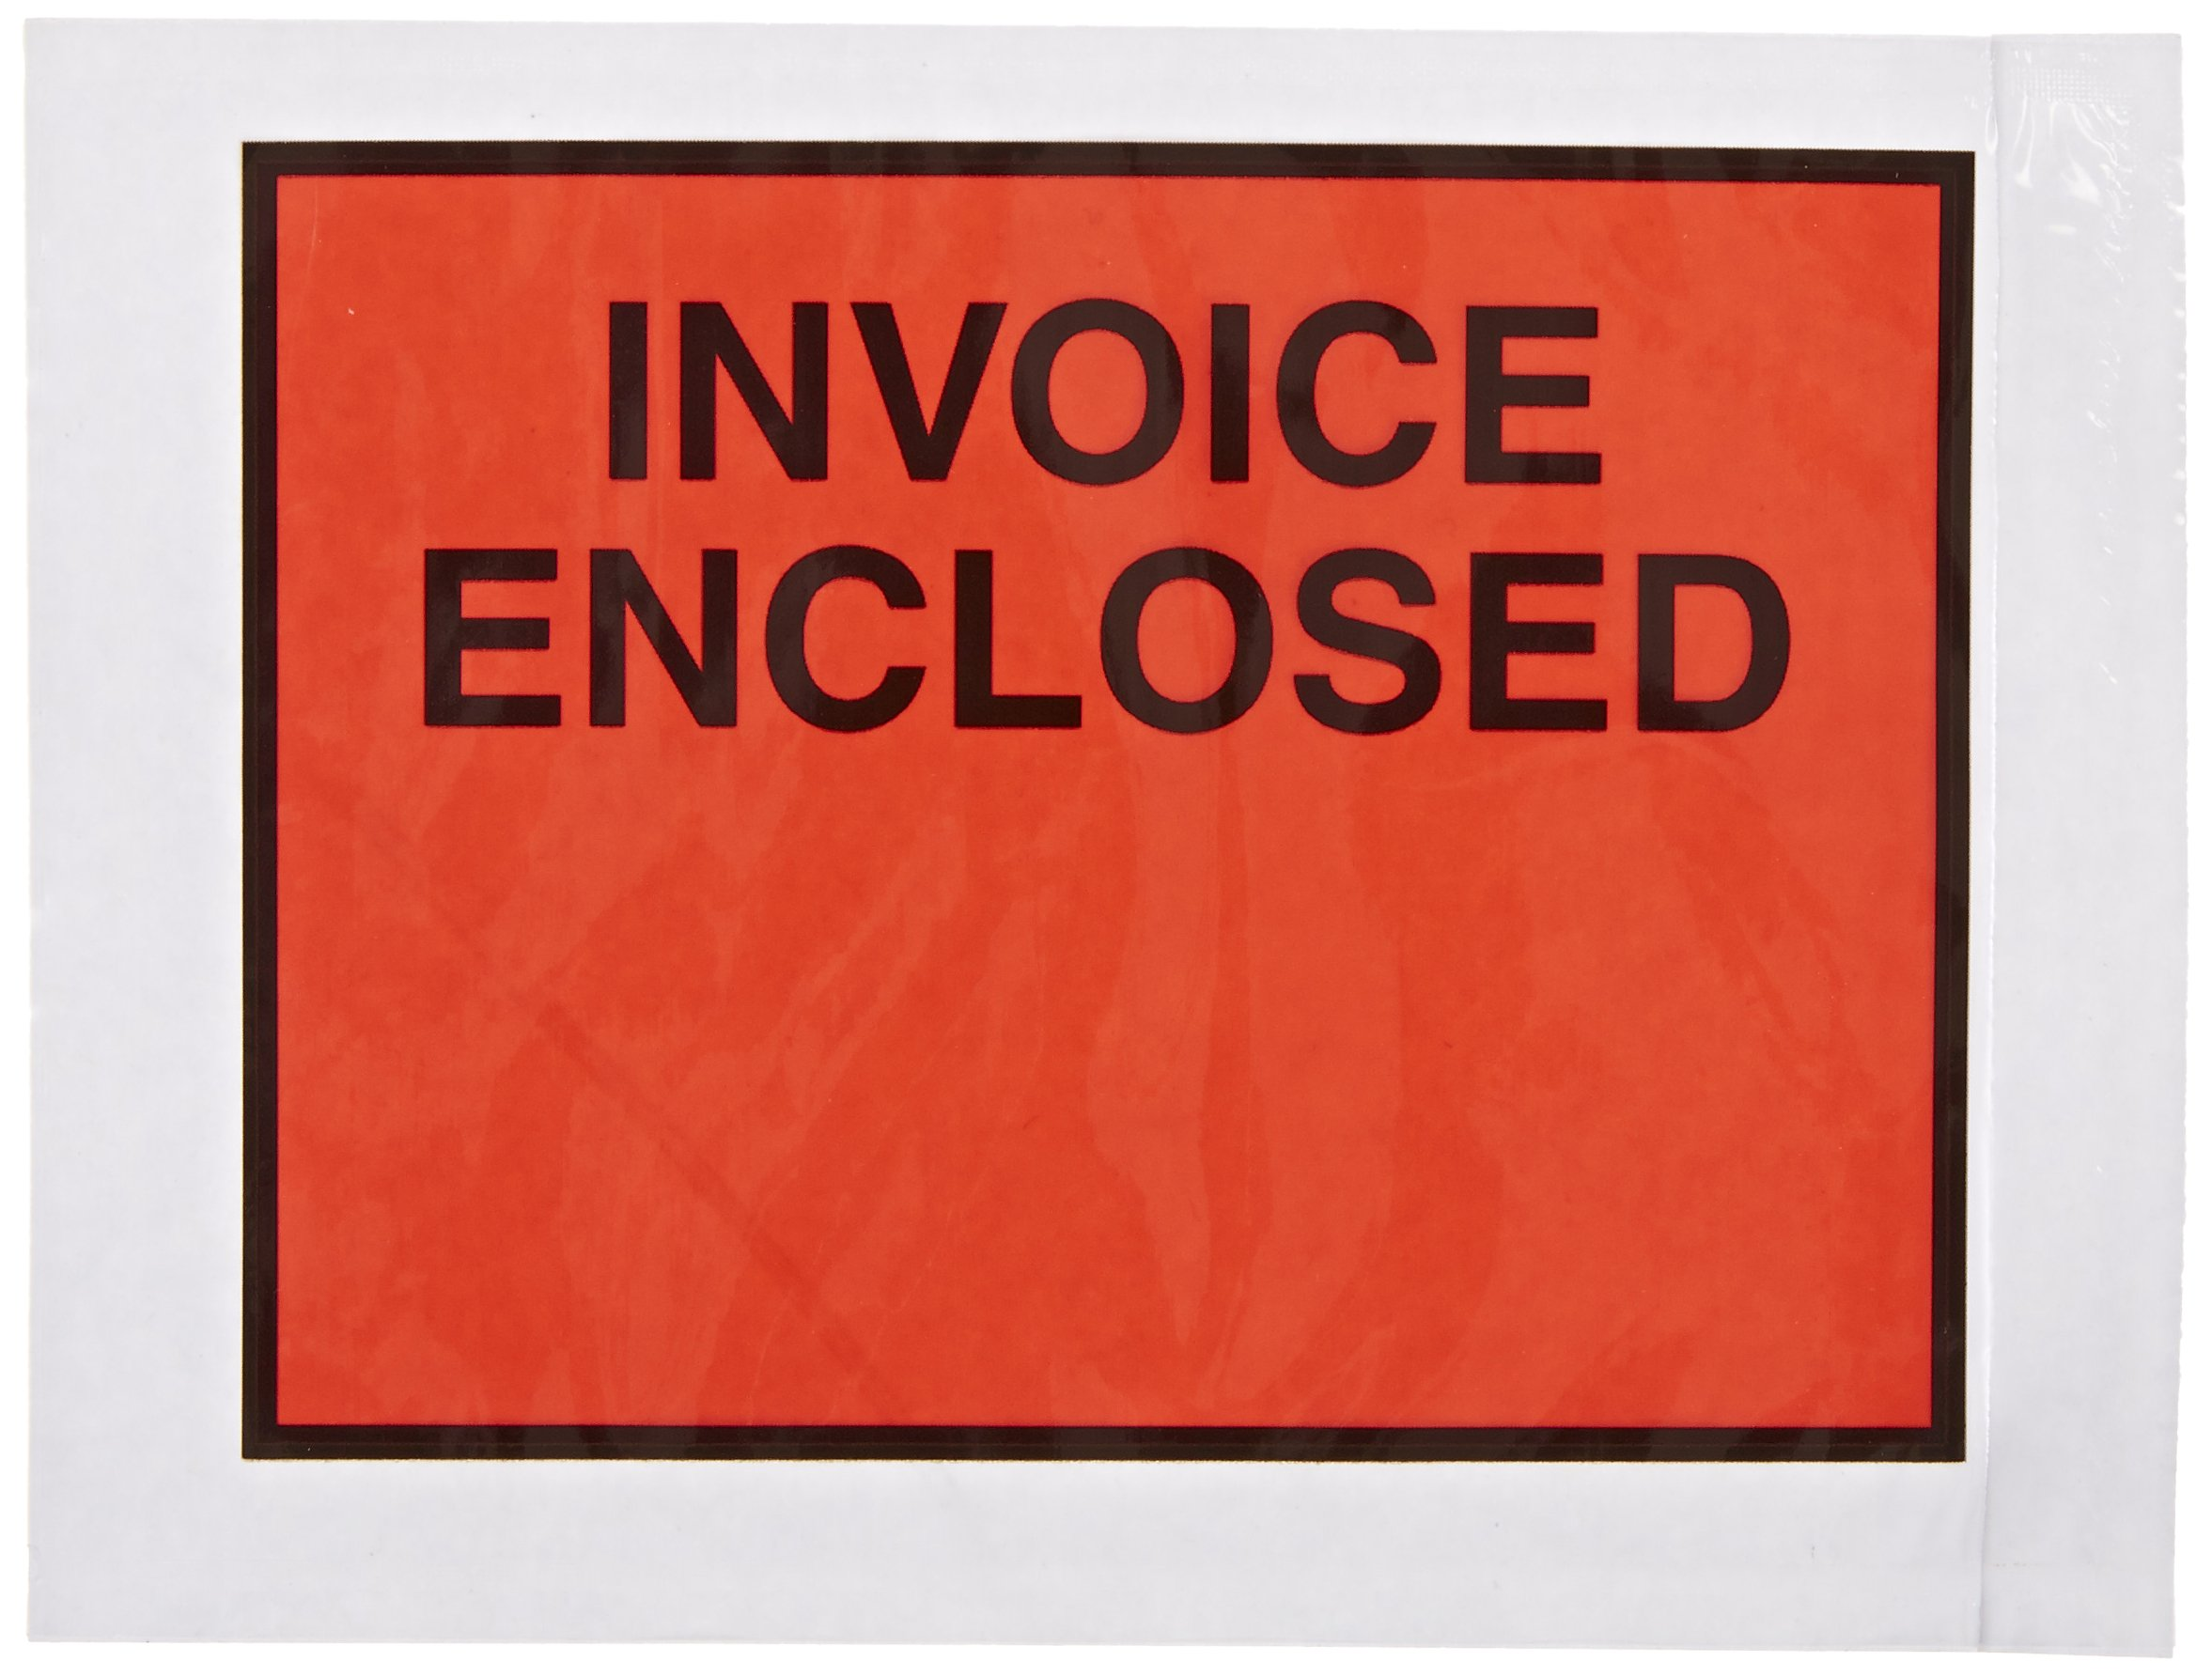 Aviditi PL420 Poly Panel Face Document Envelope, Legend''INVOICE ENCLOSED'', 4-1/2'' Length x 6'' Width, 2 mil Thick, Red/Black on White (Case of 1000) by Aviditi (Image #1)